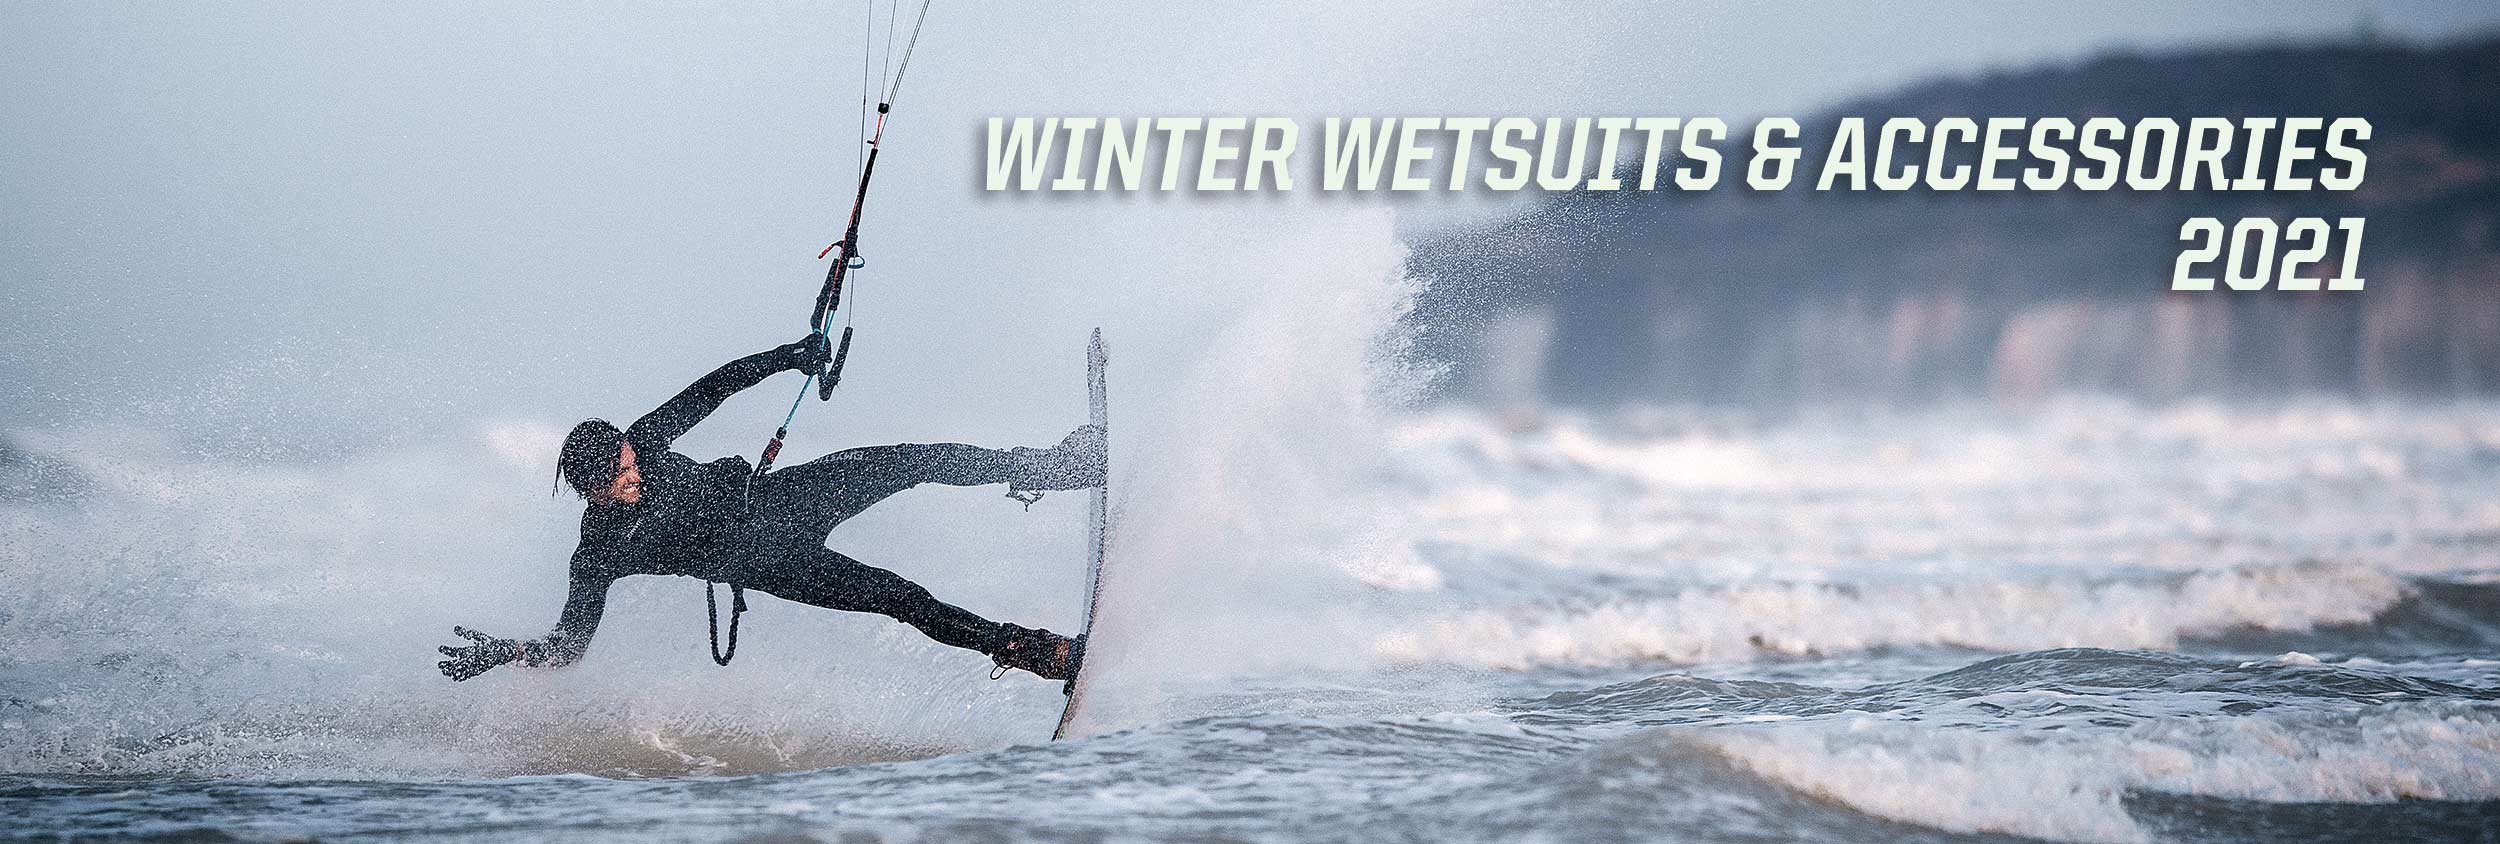 Kiteworld winter wetsuit guide